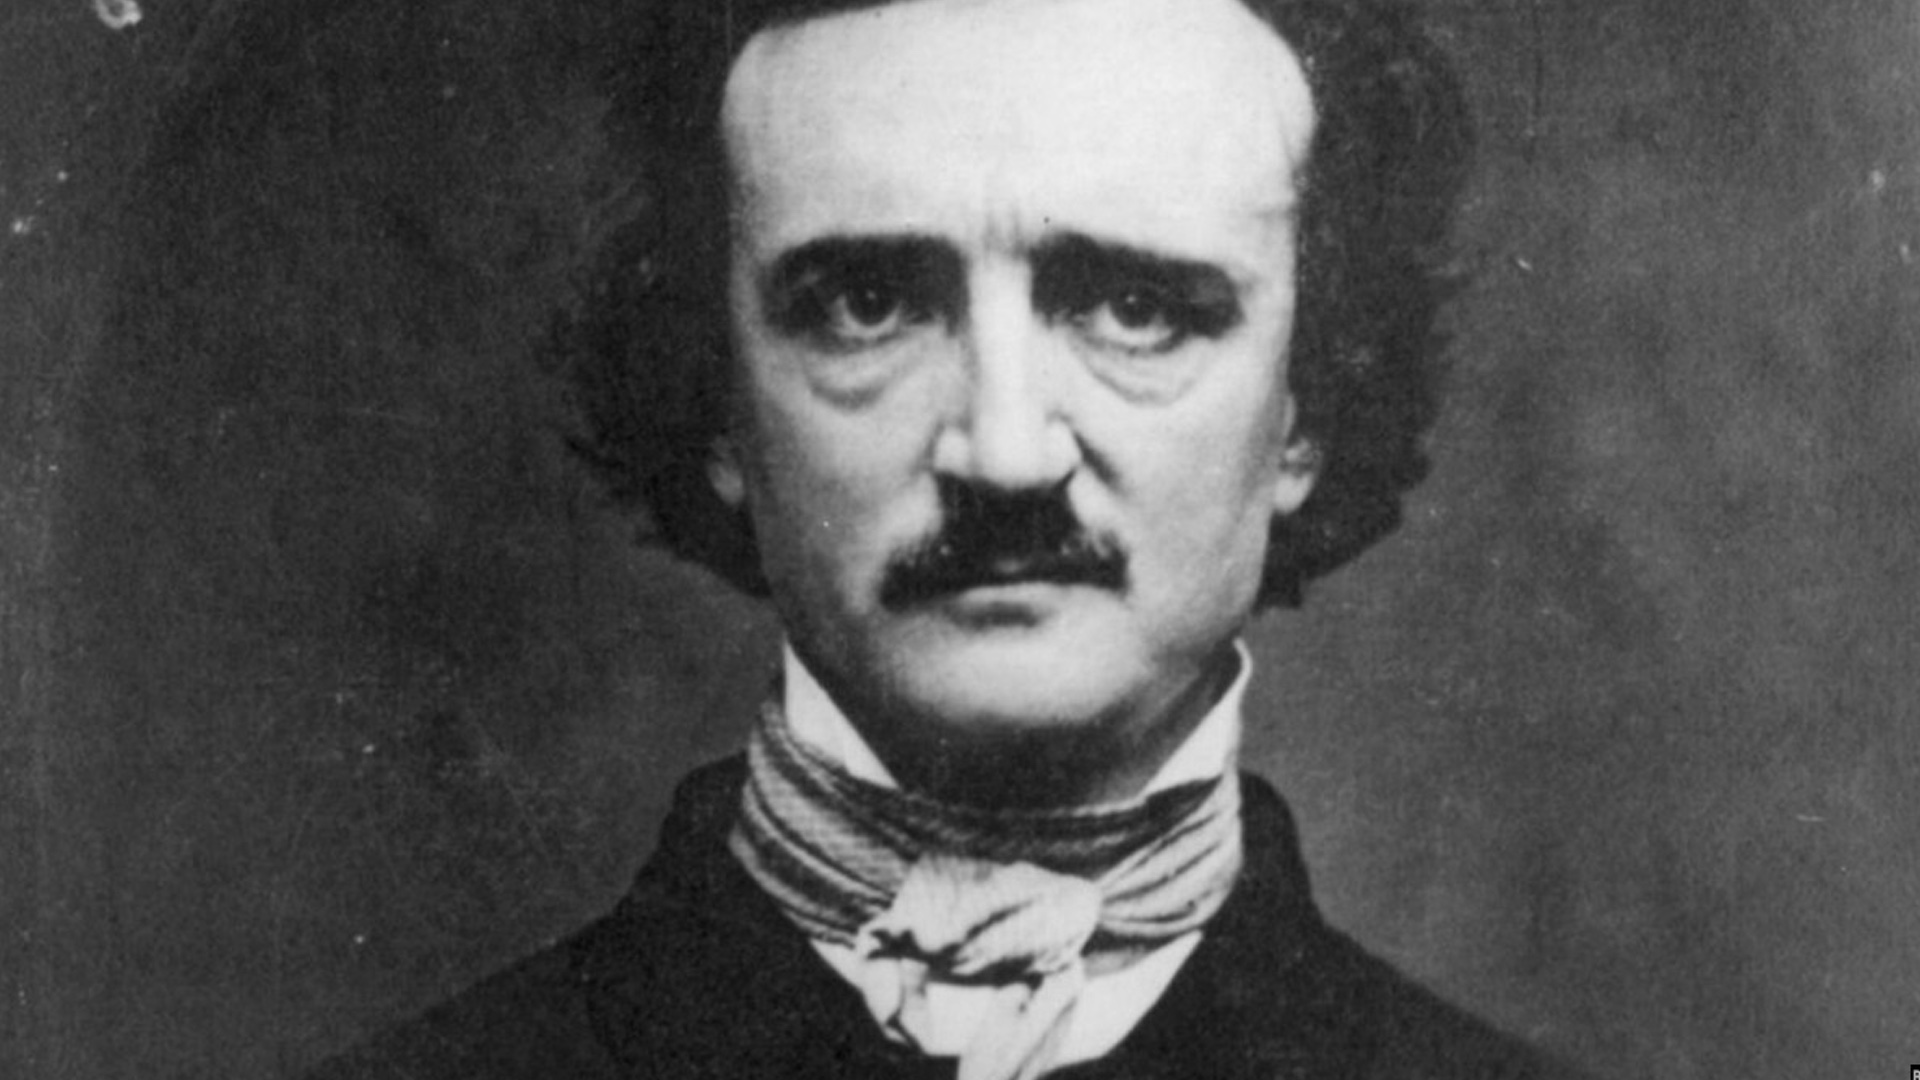 sylvester-stallone-is-still-working-on-his-edgar-allen-poe-biopic-heres-an-update-and-old-photo-of-him-as-poe-social.jpg